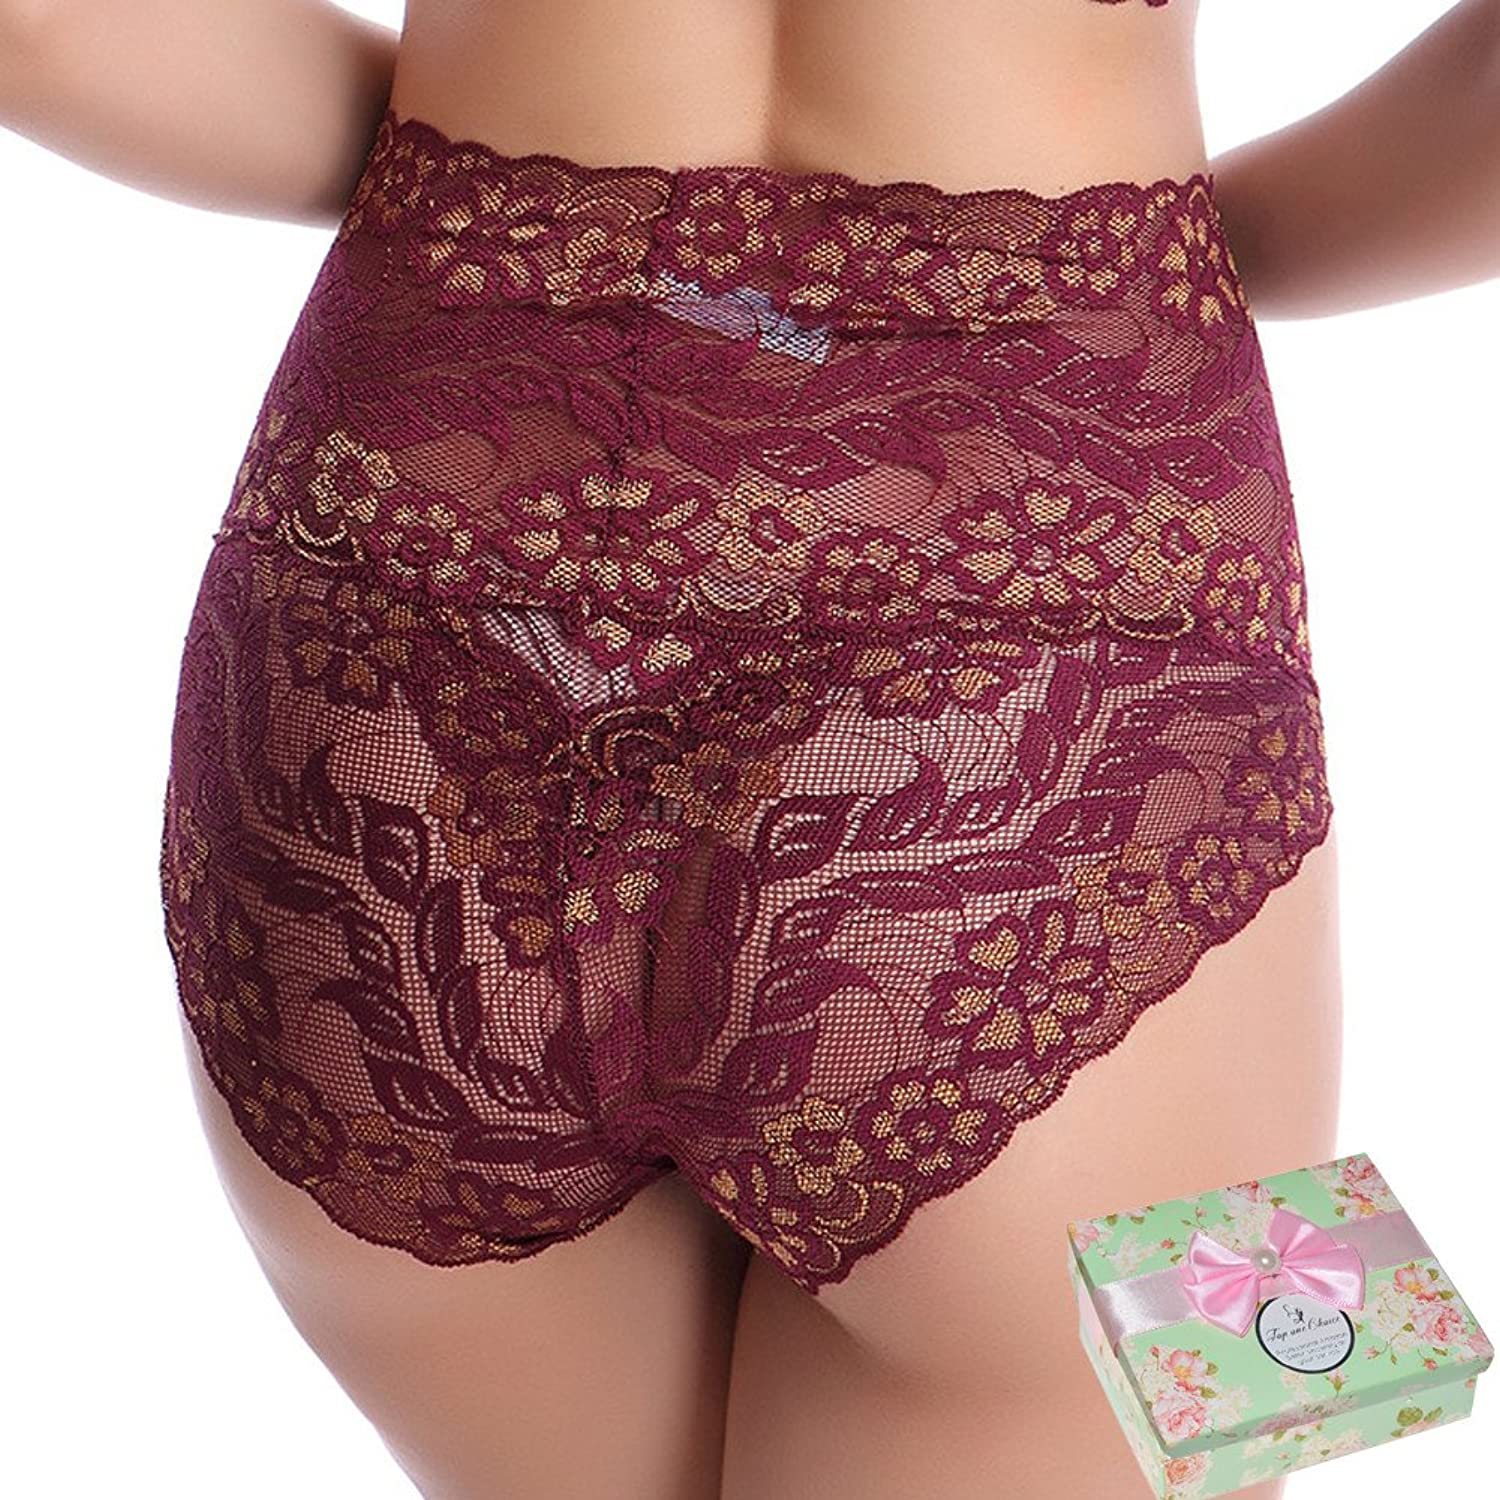 Toponechoice Women鈥檚 High Waist Lace Panties Comfortable Underwear with High Elastic